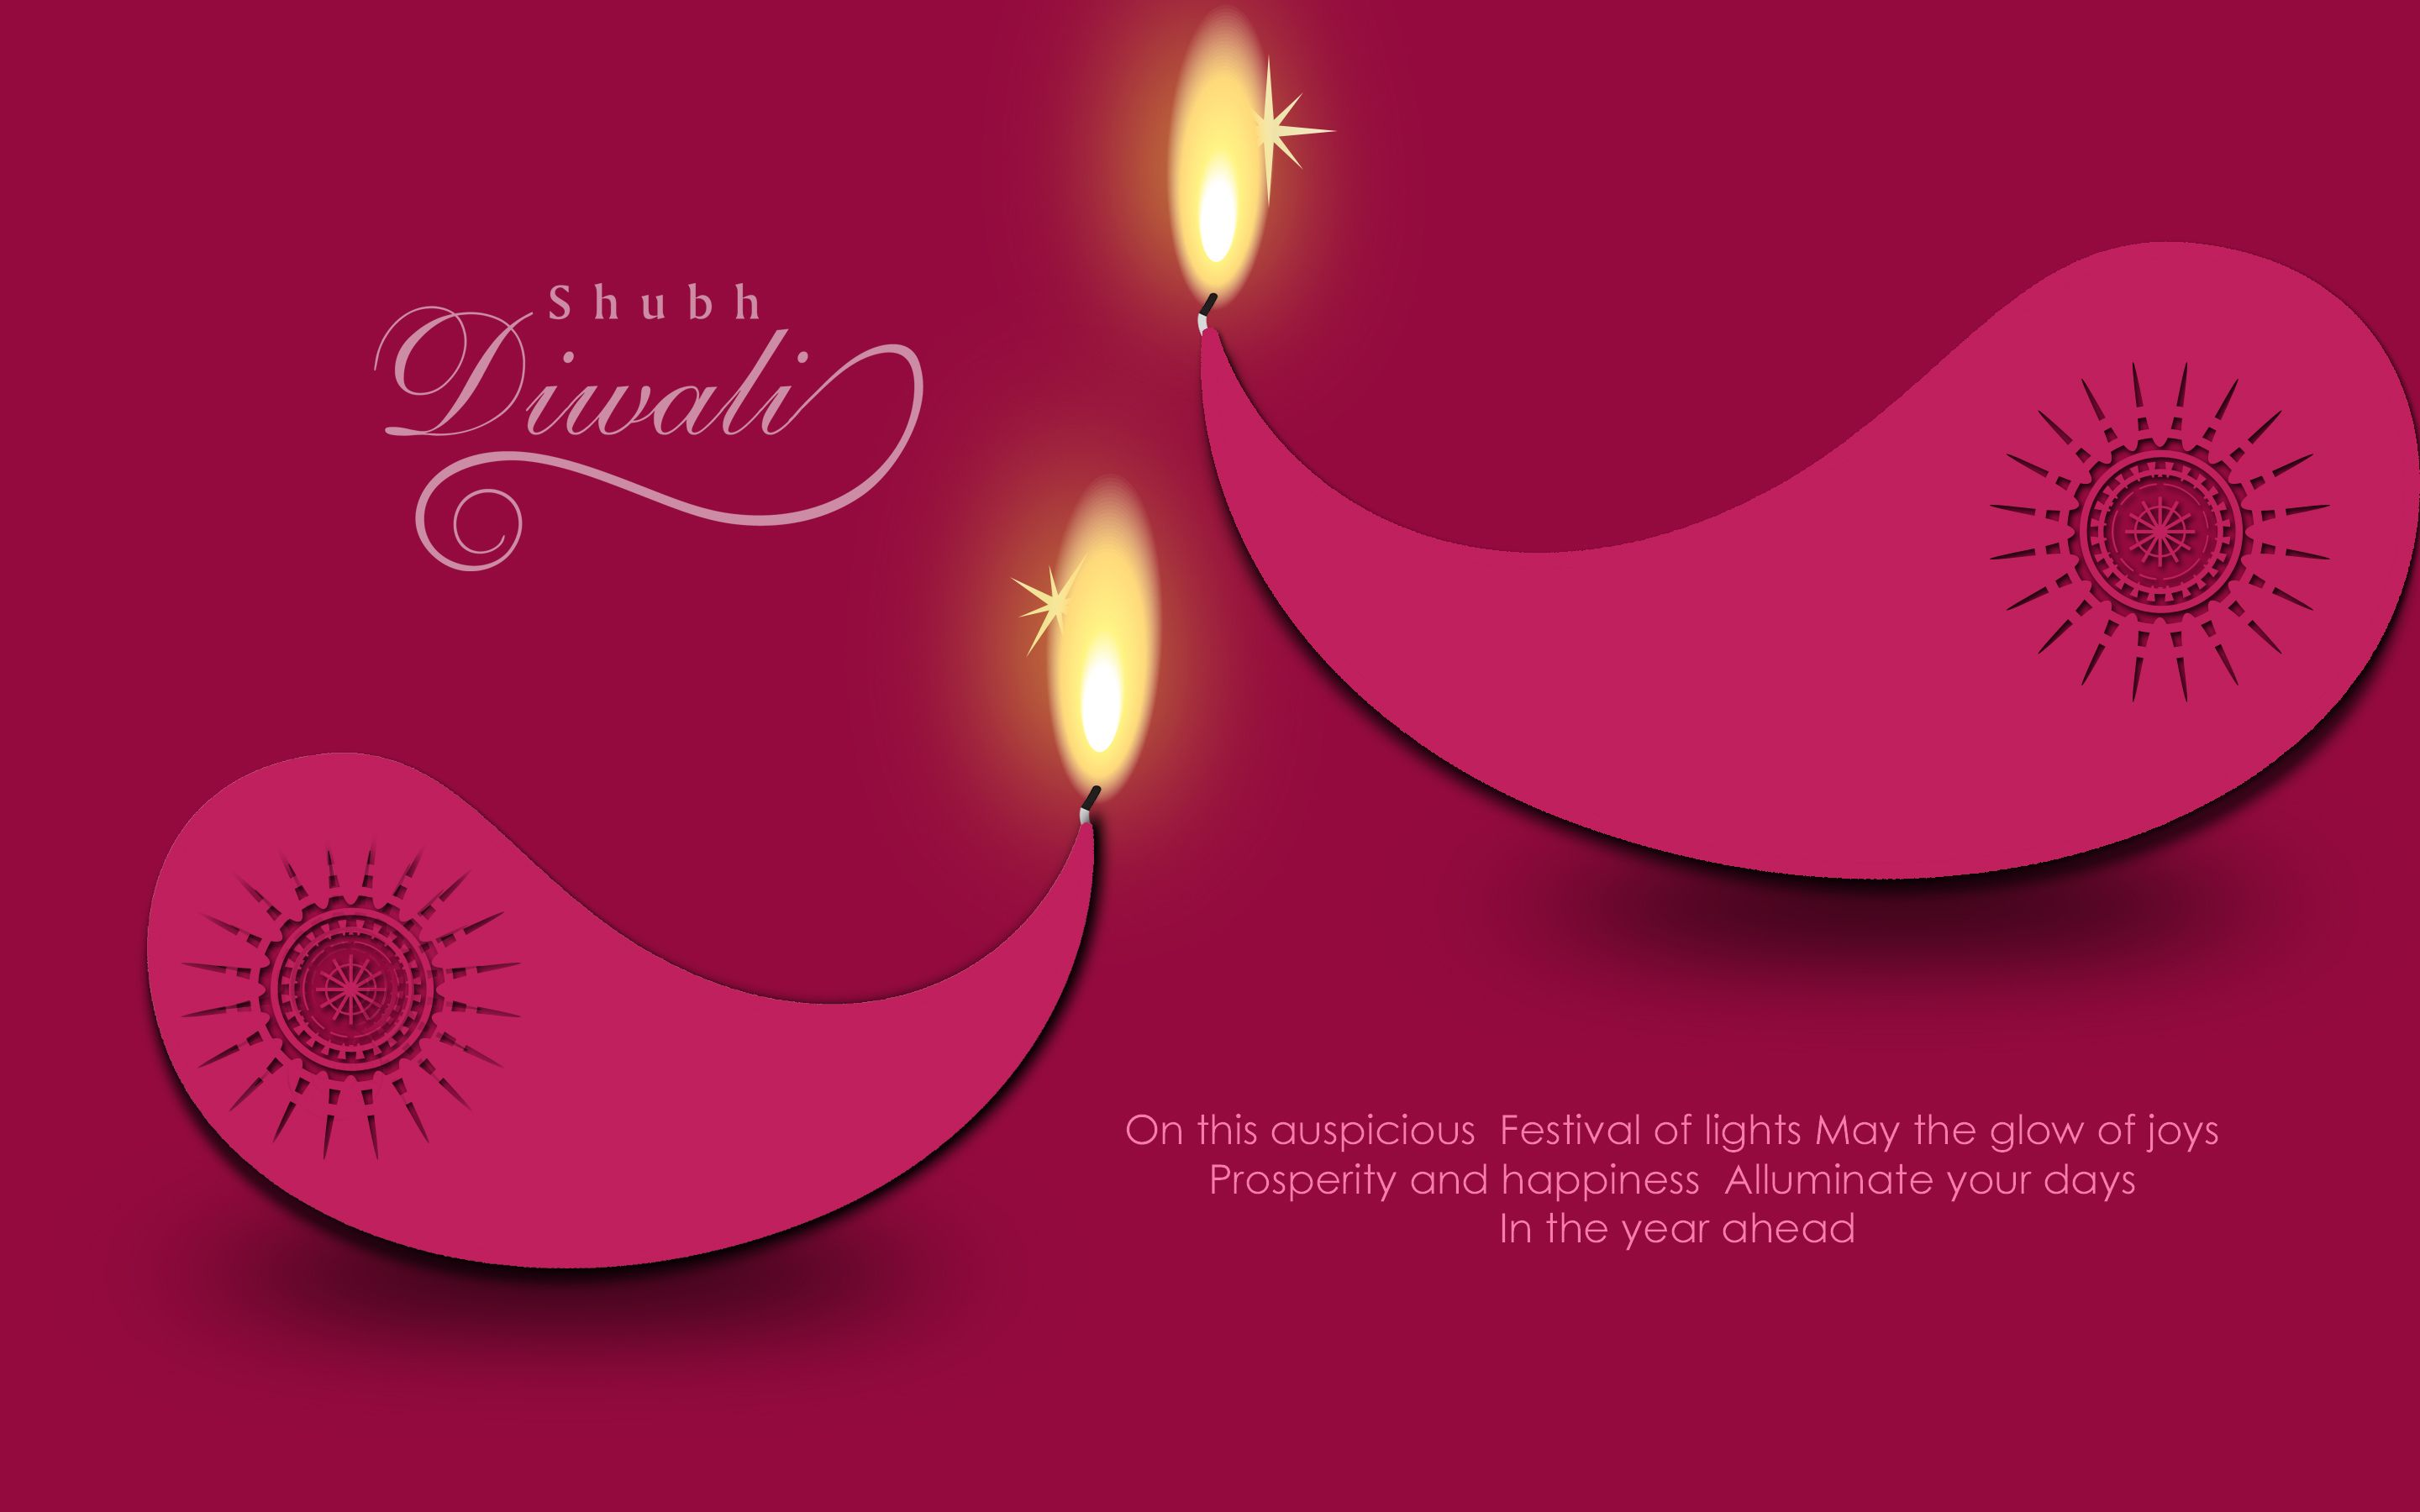 Happy Diwali 2015 Message And Wallpapers Httpfestivalworldz